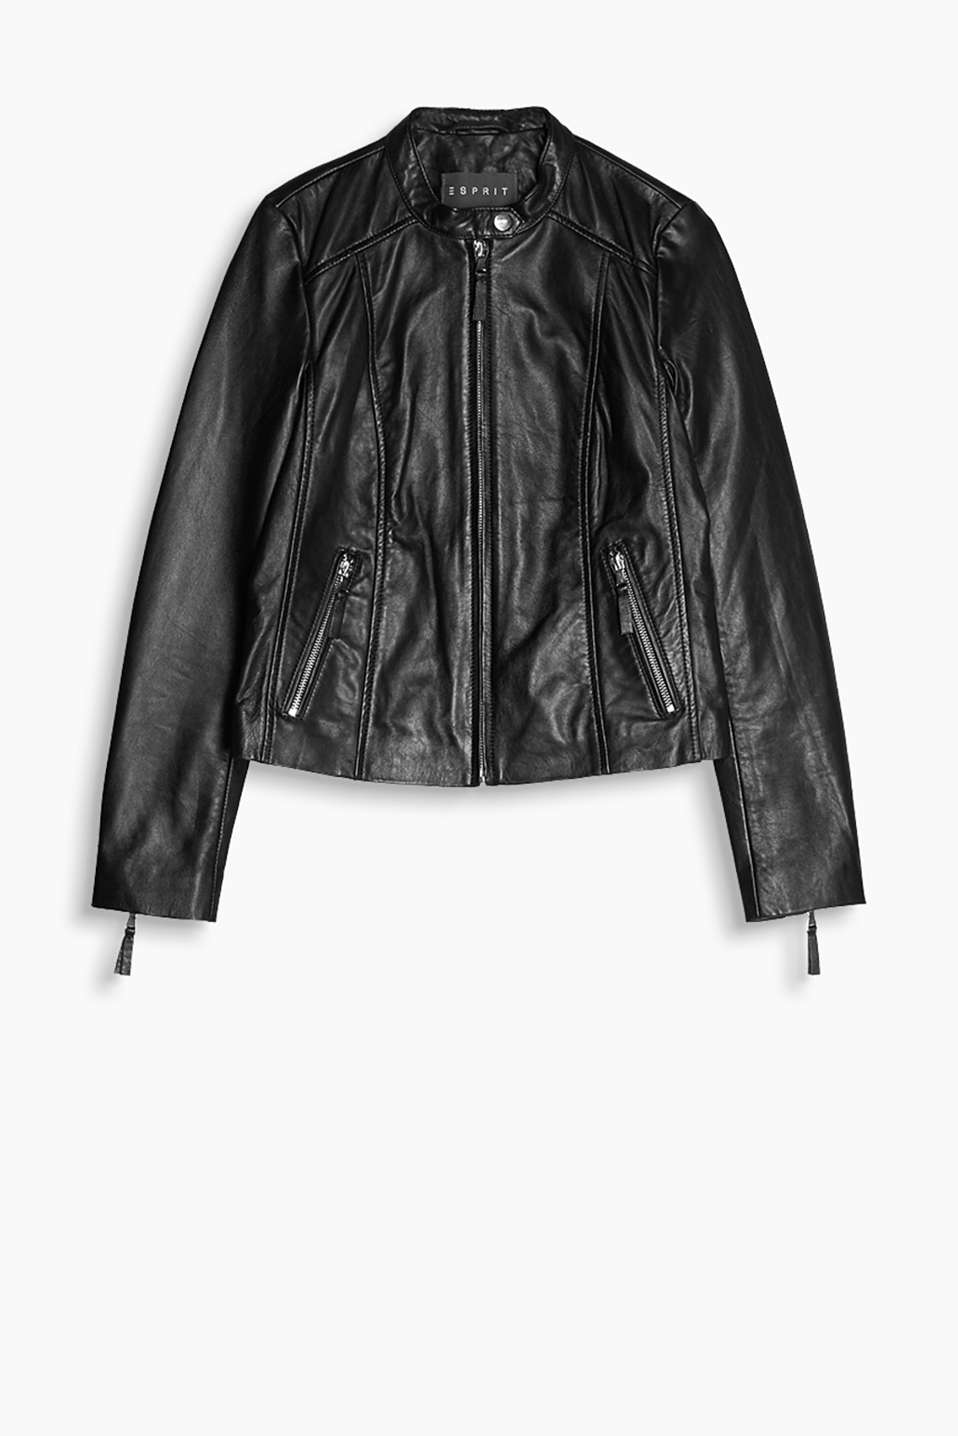 Short biker jacket with a stand-up collar and zips, 100% leather